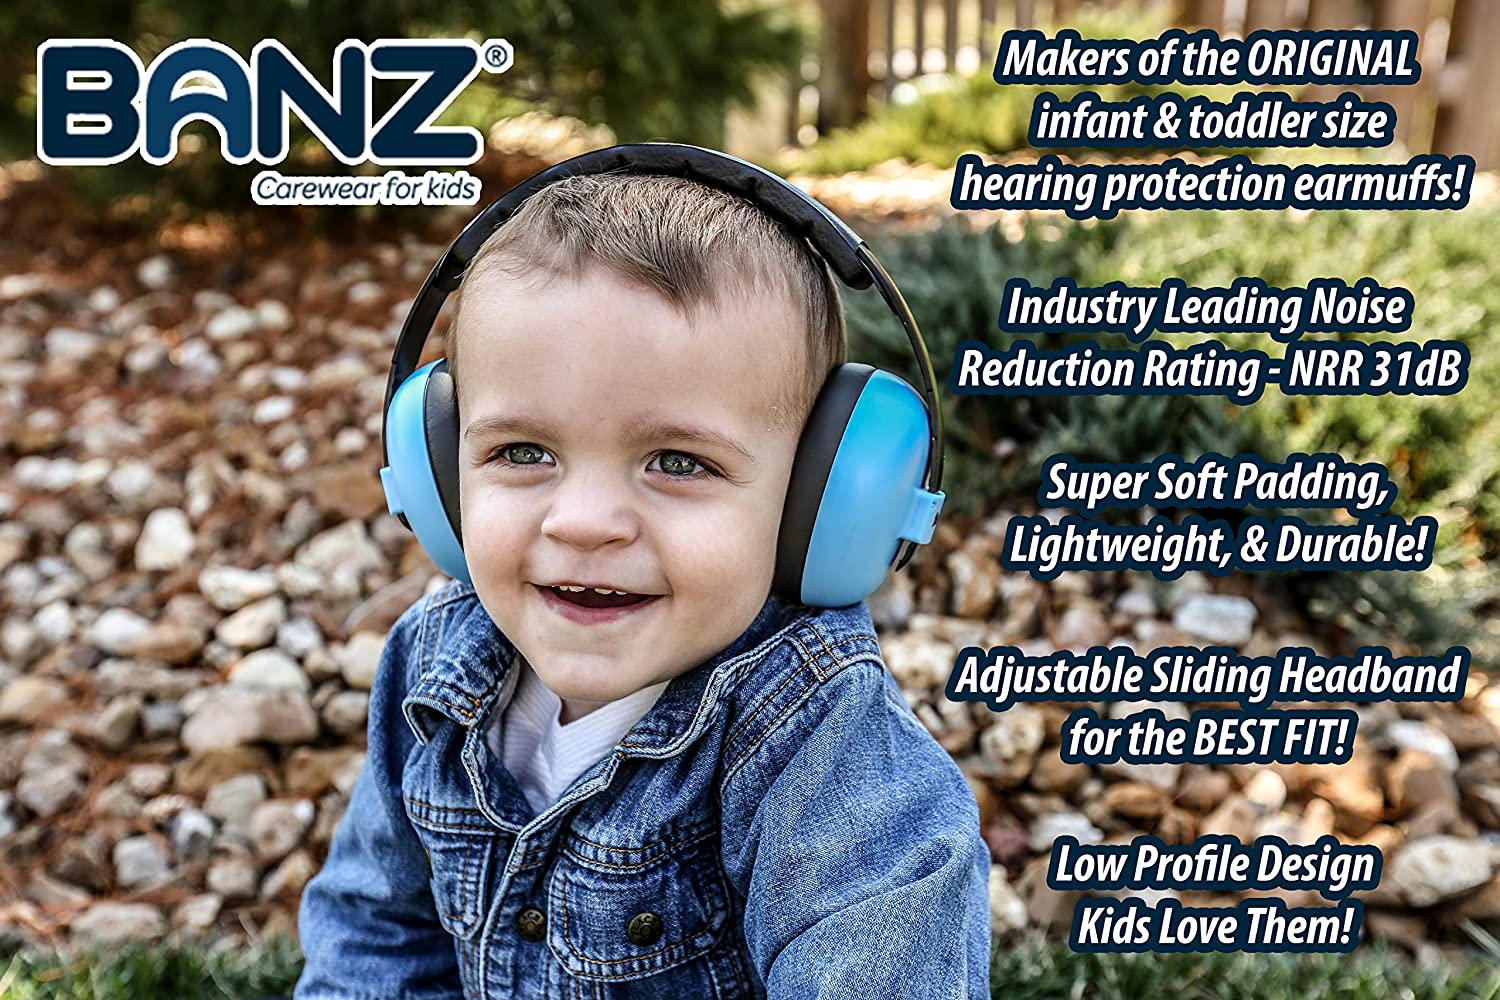 3f53c203669d Amazon.com : Baby Banz Earmuffs Infant Hearing Protection - Ages 0-2+ Years  - THE BEST EARMUFFS FOR BABIES & TODDLERS - Industry Leading Noise  Reduction ...